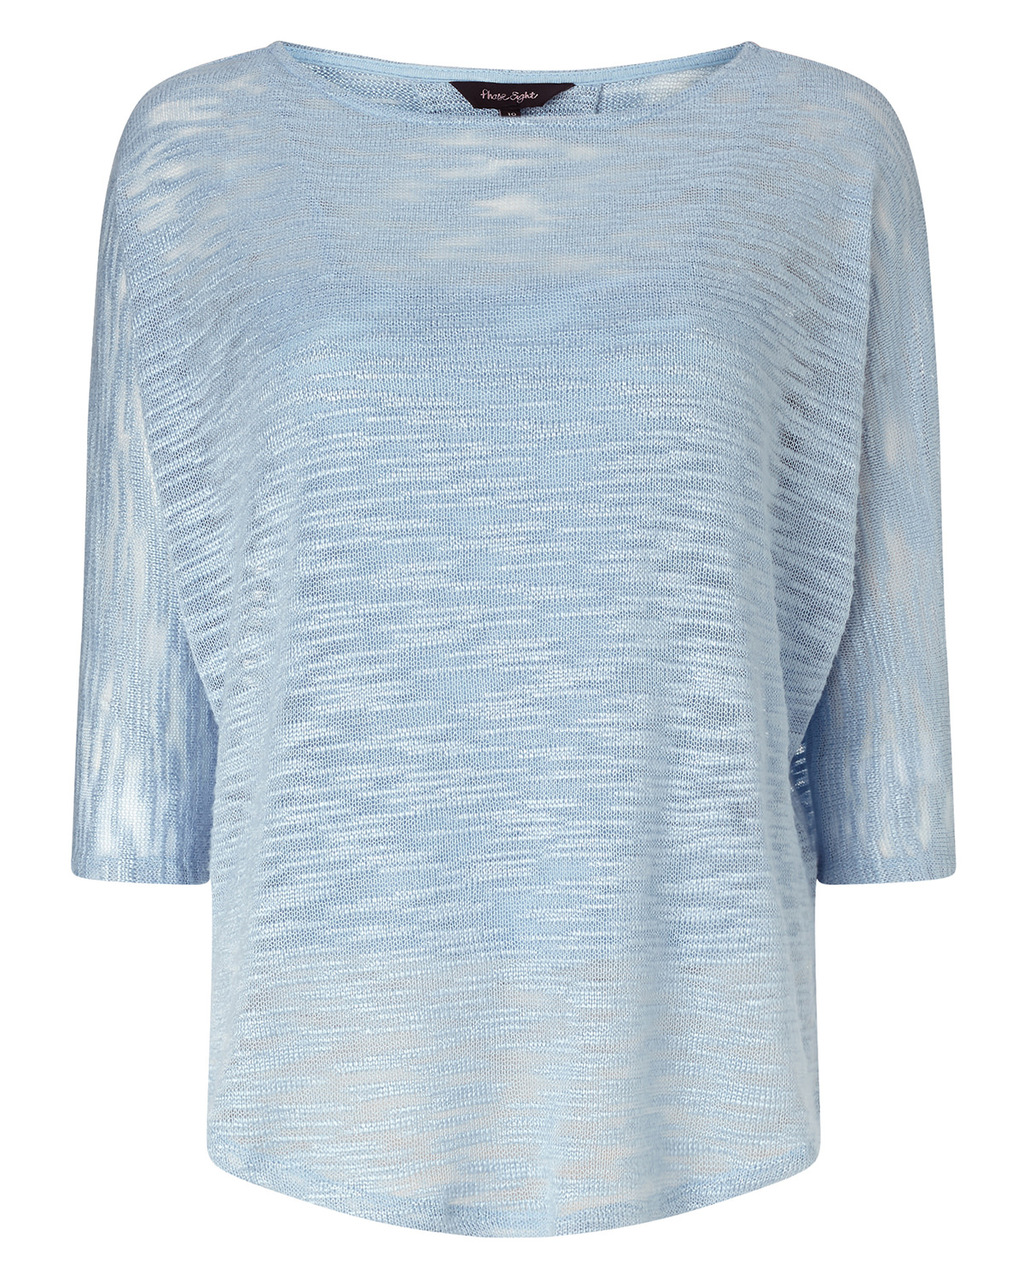 Saskia Slub Top - sleeve style: dolman/batwing; predominant colour: pale blue; occasions: casual; length: standard; style: top; fibres: cotton - 100%; fit: body skimming; neckline: crew; sleeve length: 3/4 length; pattern type: fabric; pattern size: light/subtle; pattern: patterned/print; texture group: jersey - stretchy/drapey; season: a/w 2015; wardrobe: highlight